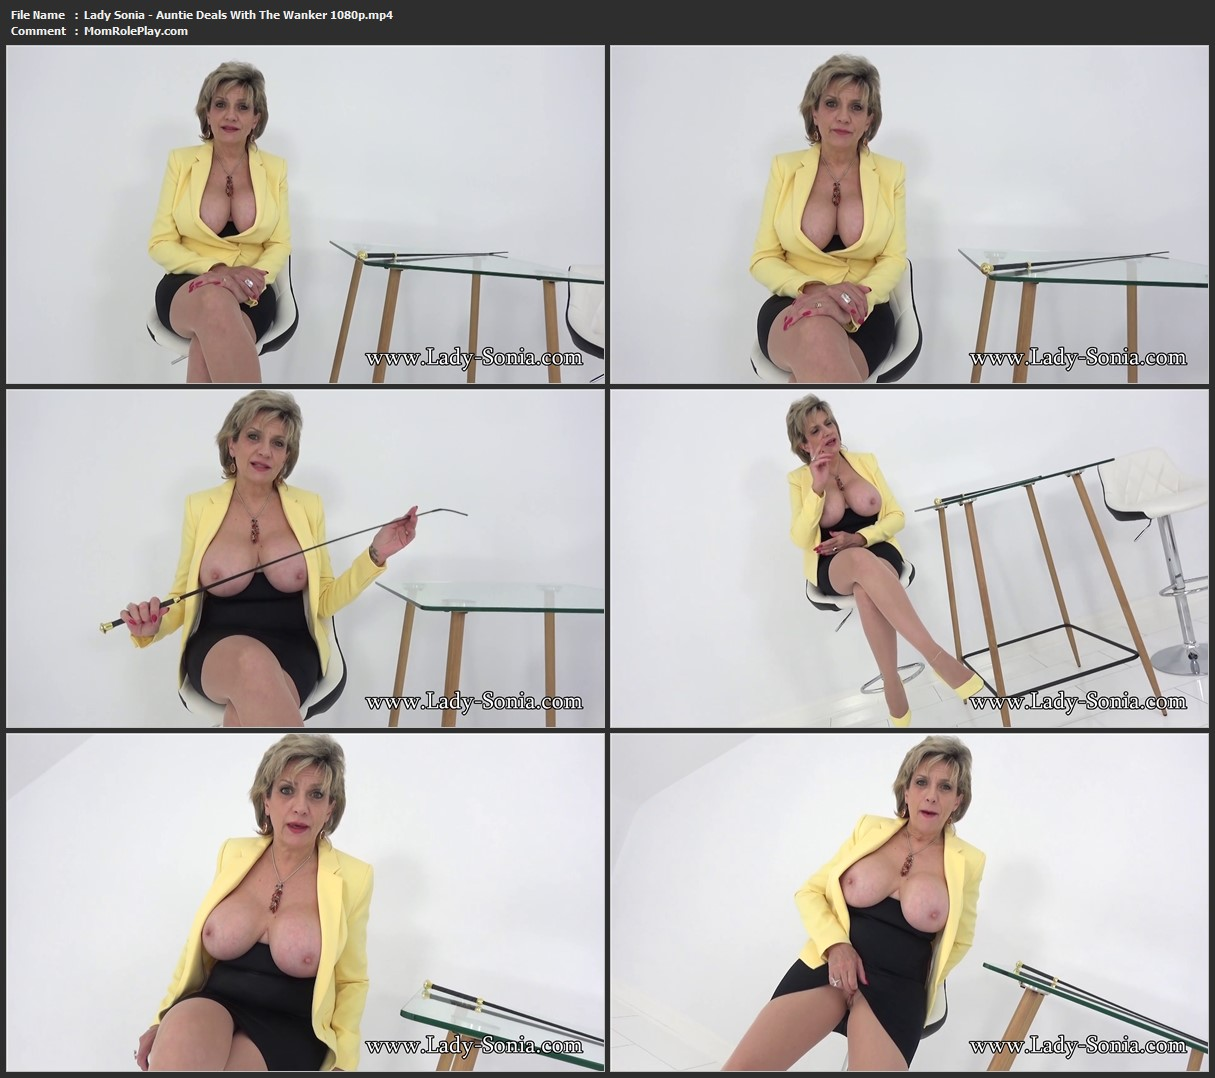 Lady Sonia - Auntie Deals With The Wanker